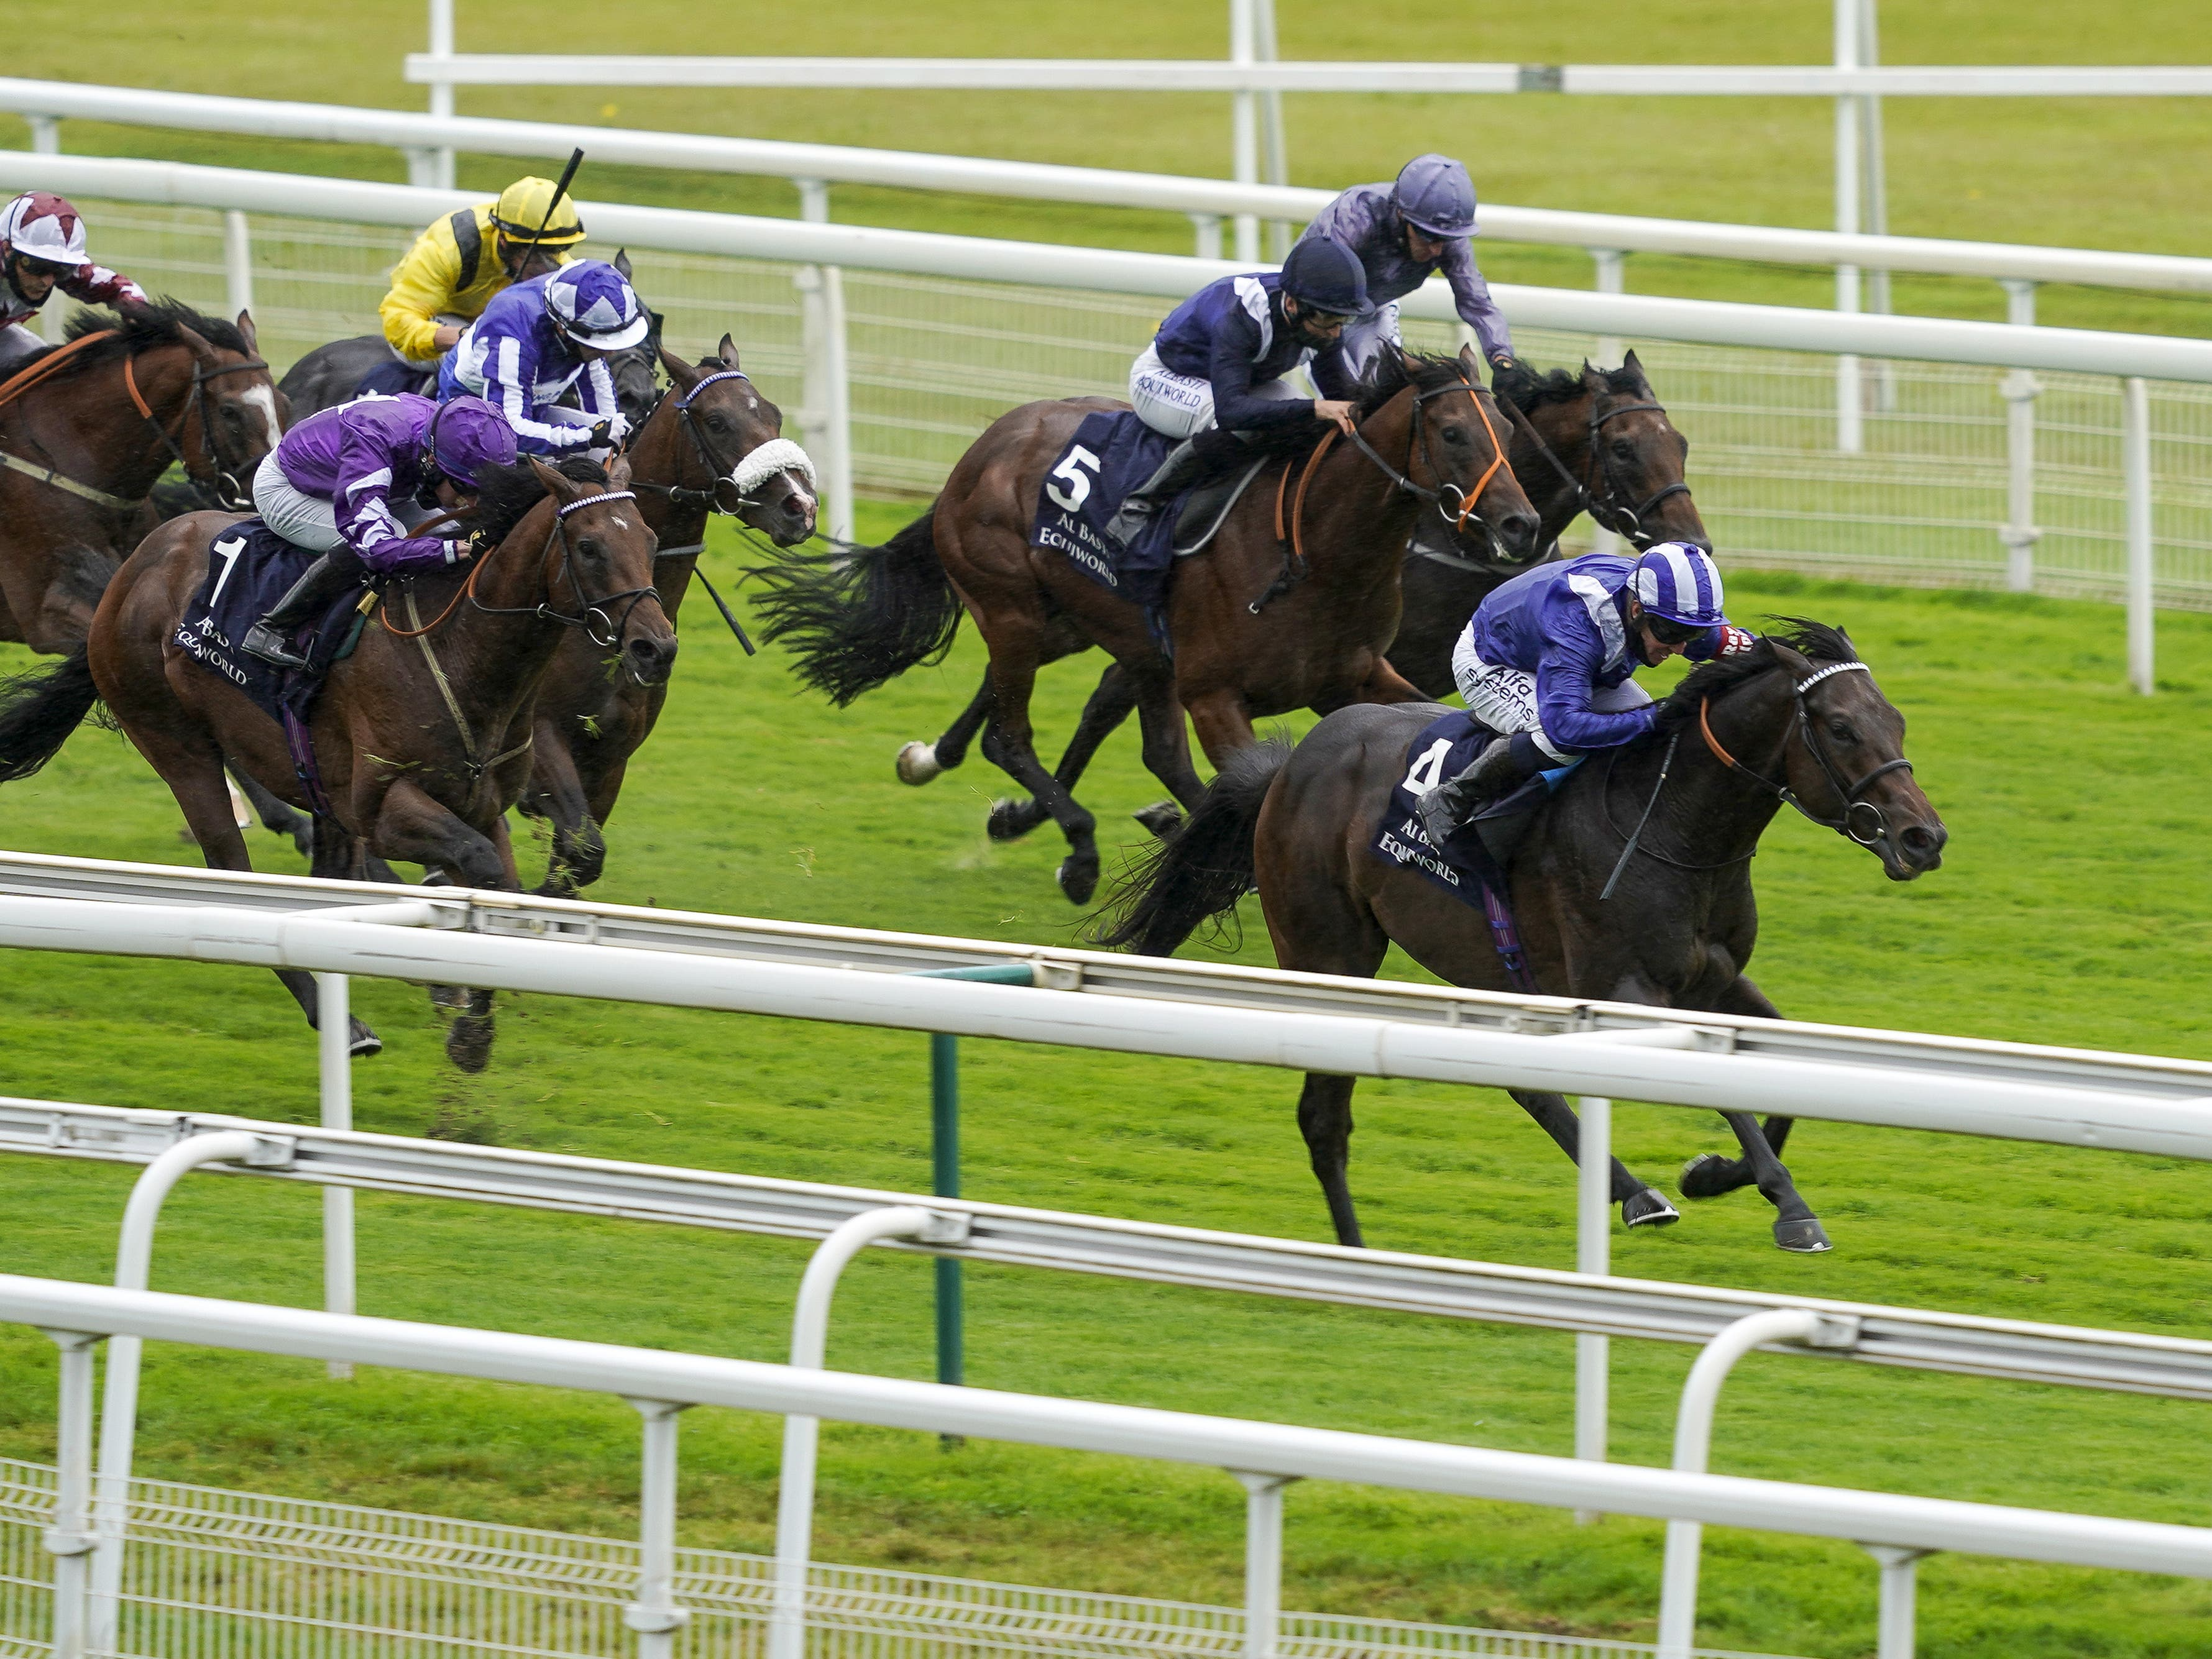 Gimcrack winner Minzaal (right) is sidelined with a leg injury (Alan Crowhurst/PA)